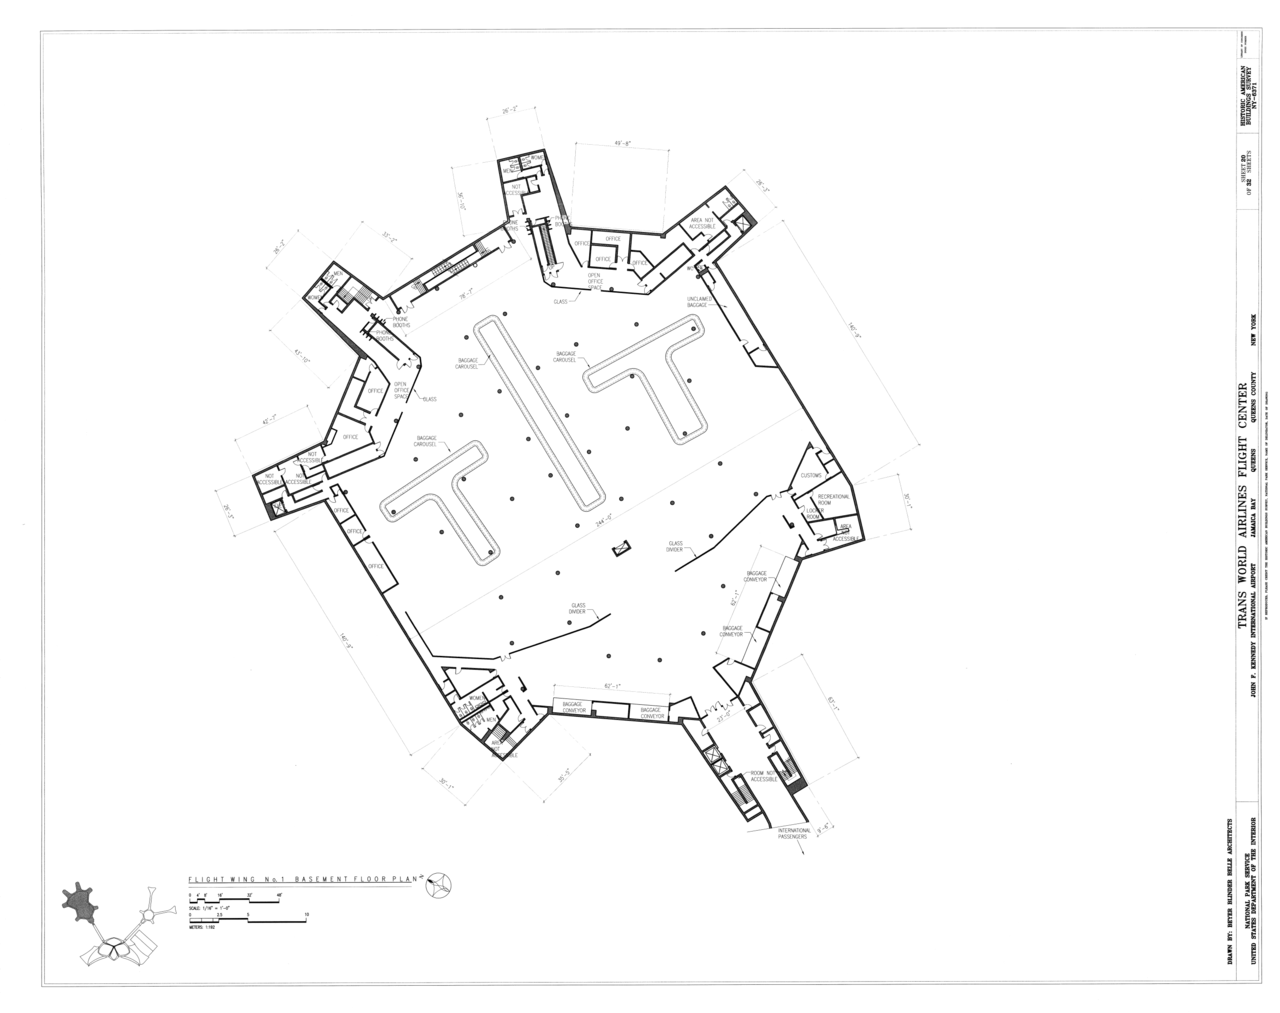 Ping Complex Plan Elevation Section : File flight wing no plan section and elevation